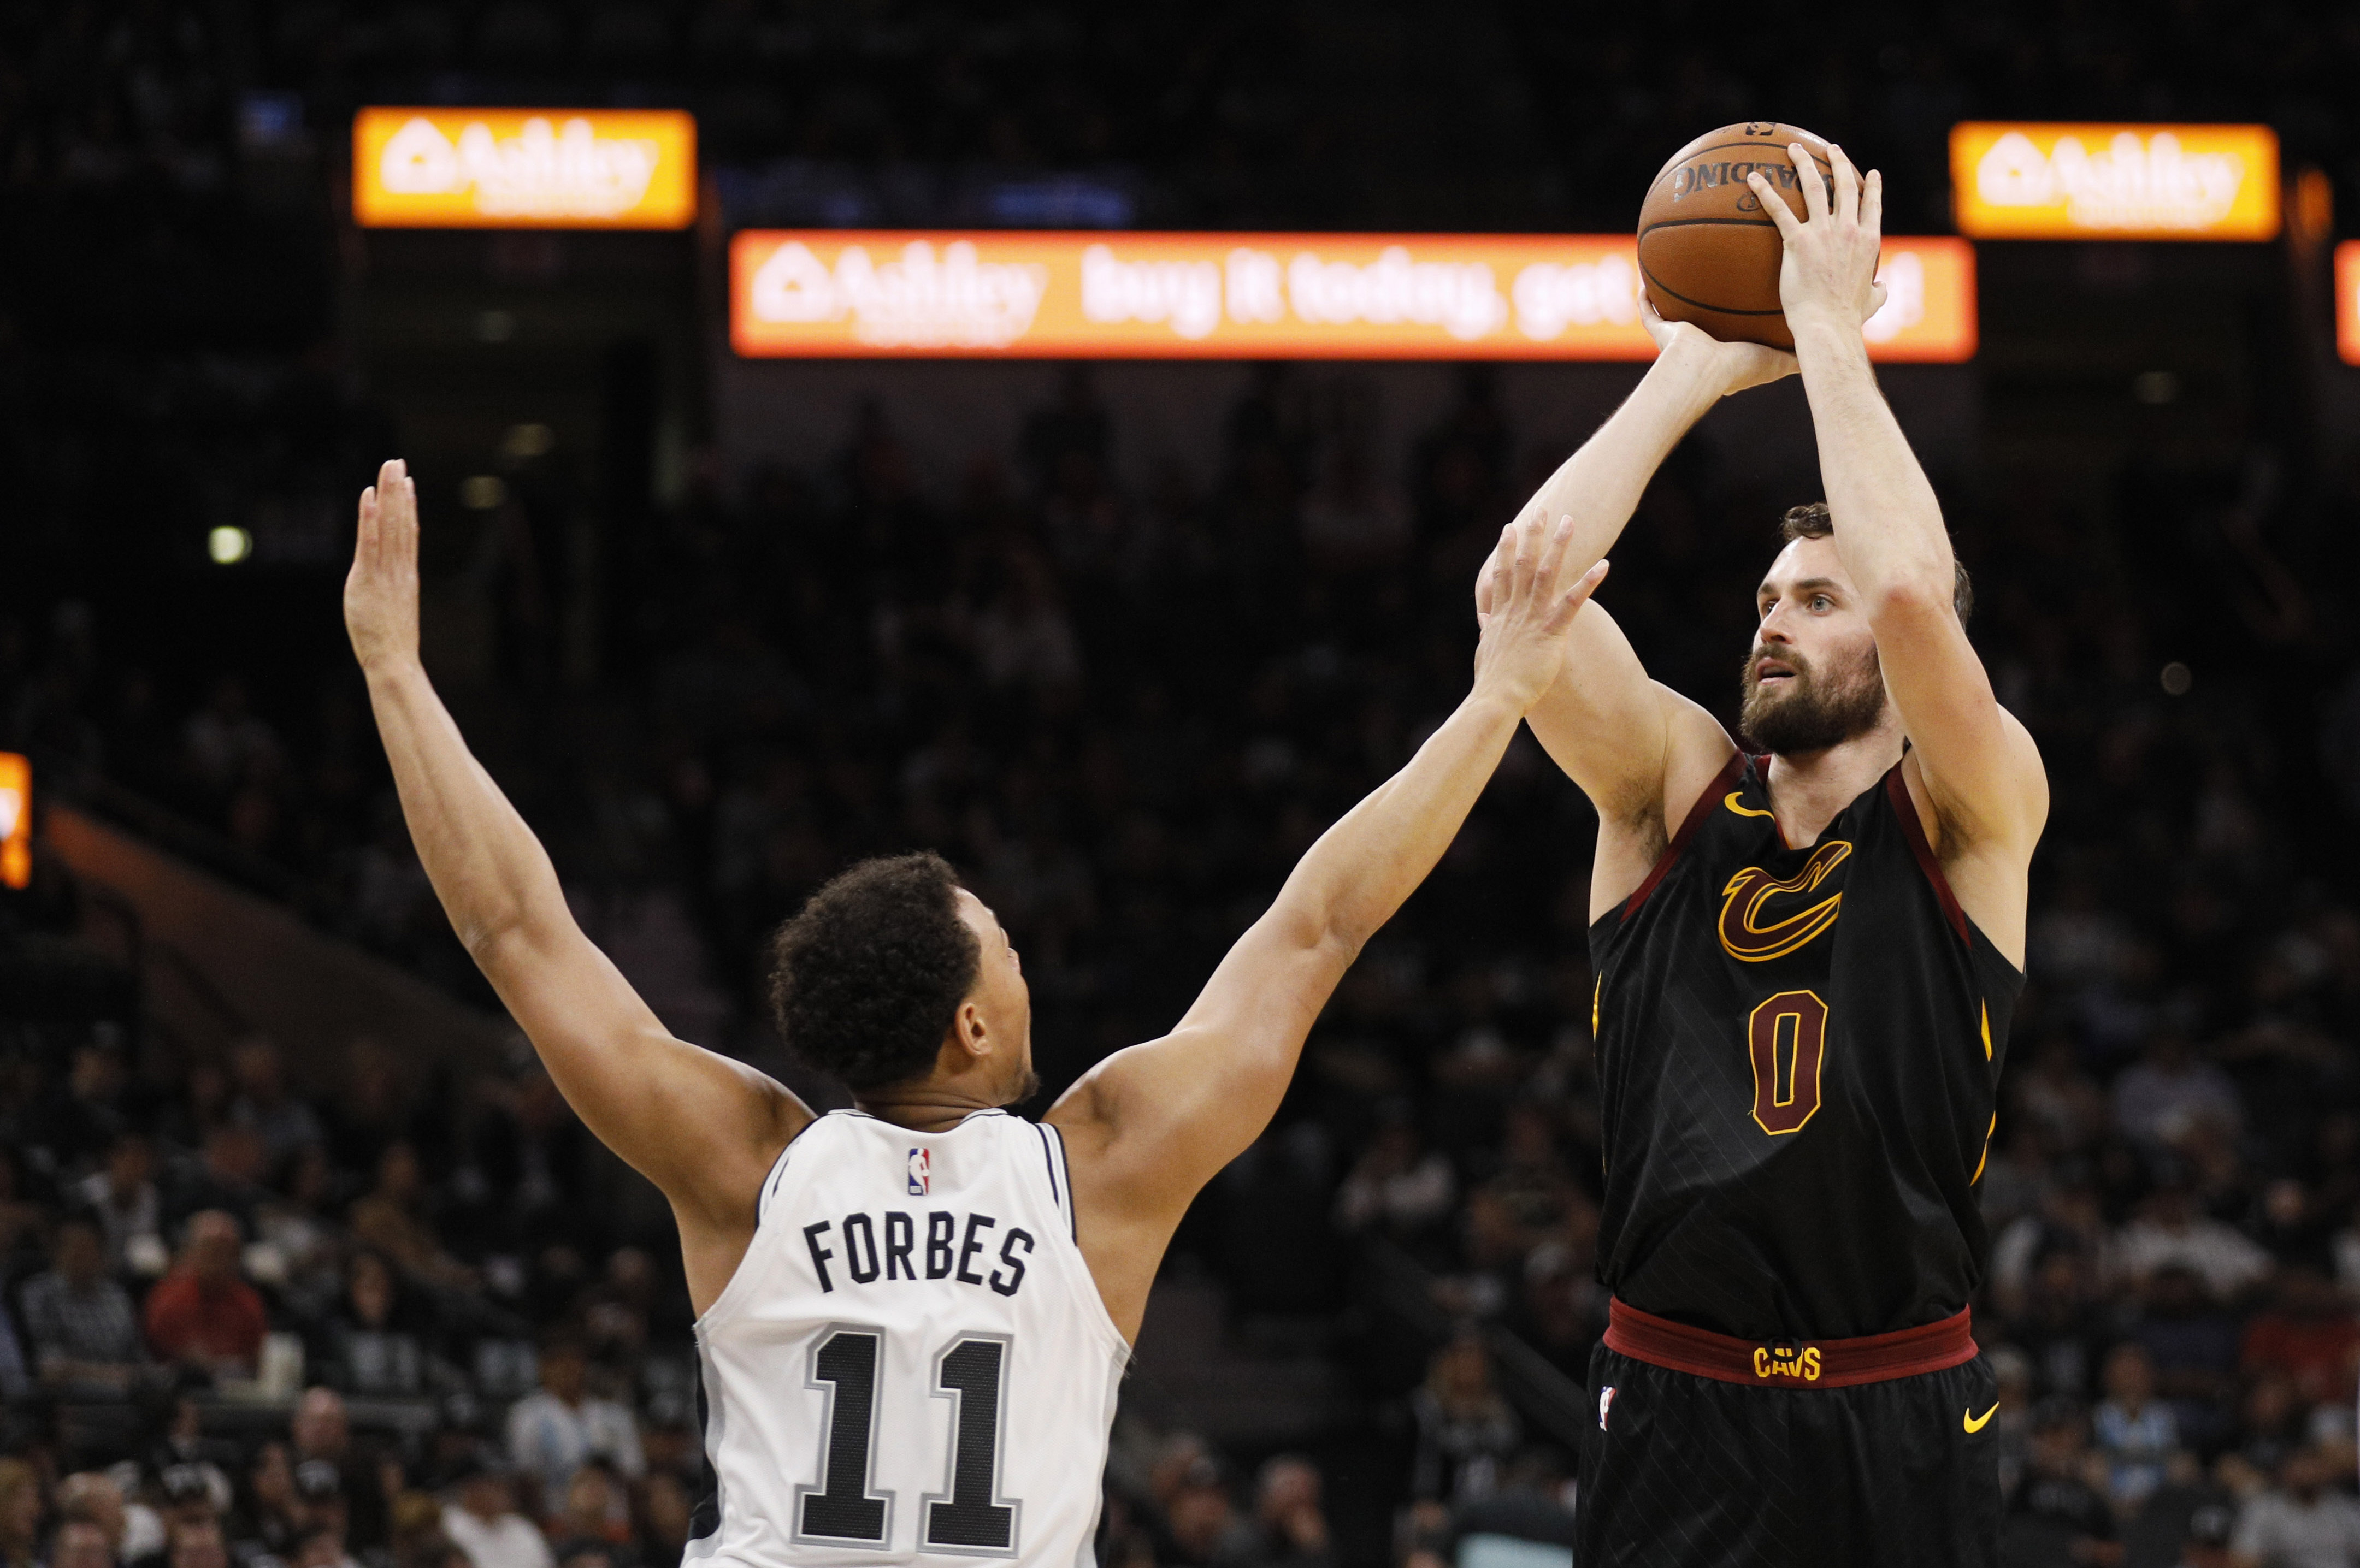 NBA: Cleveland Cavaliers at San Antonio Spurs